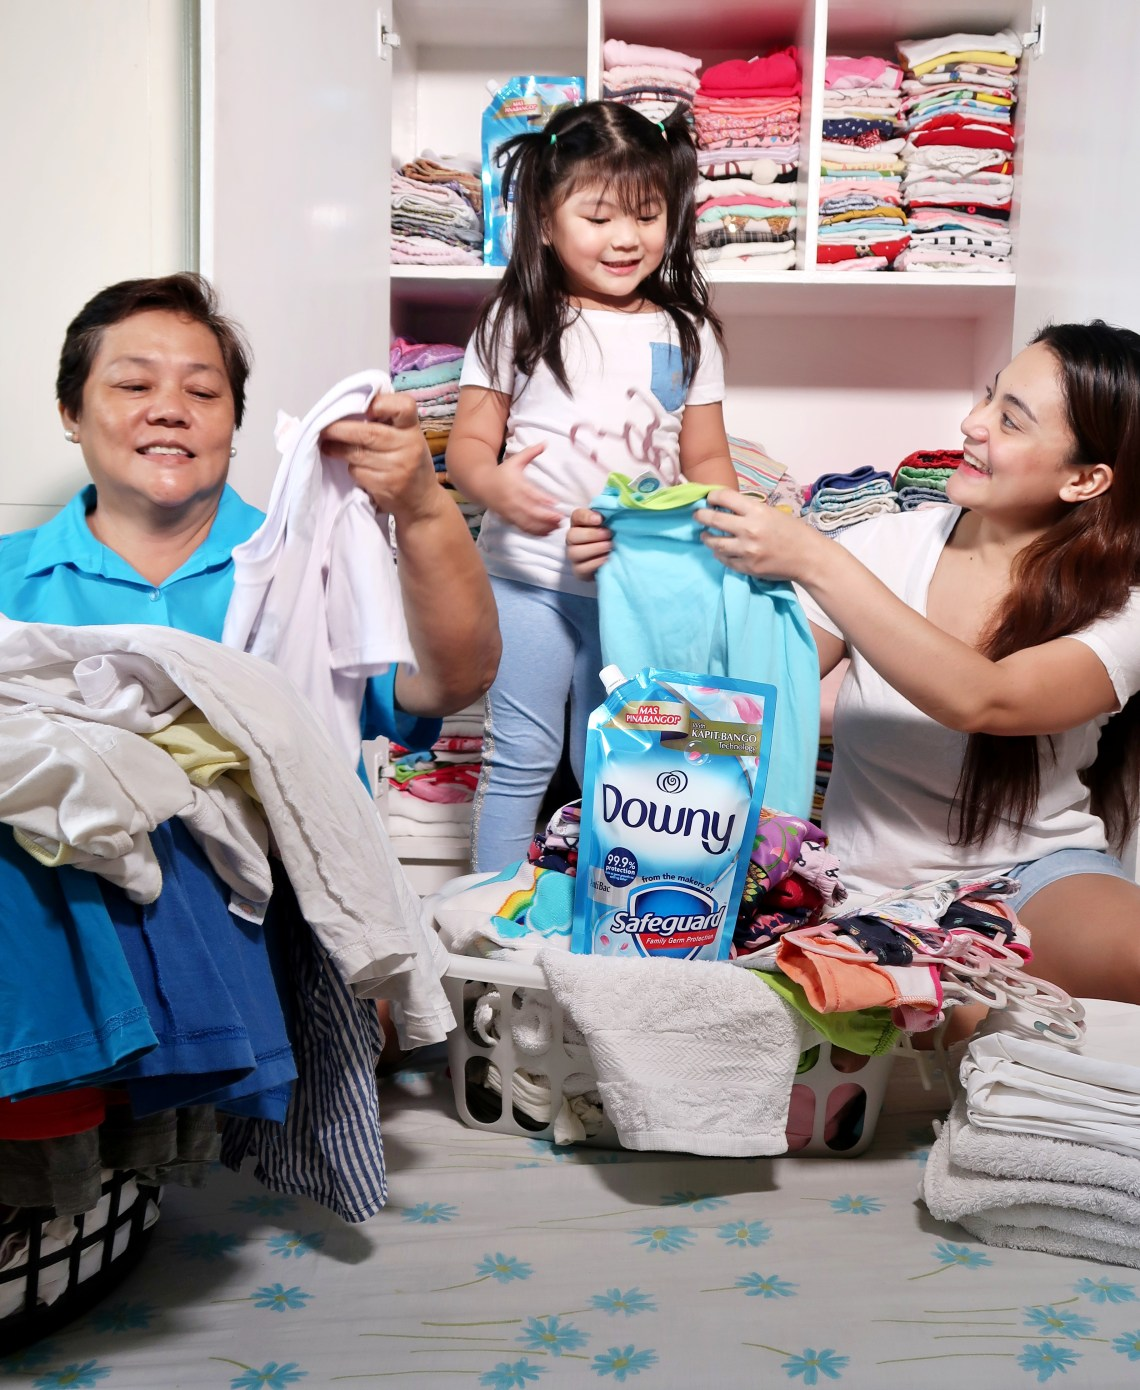 dyosathemomma: Downy AntiBac with Safeguard review, mommybloggerph, best fabric conditioner